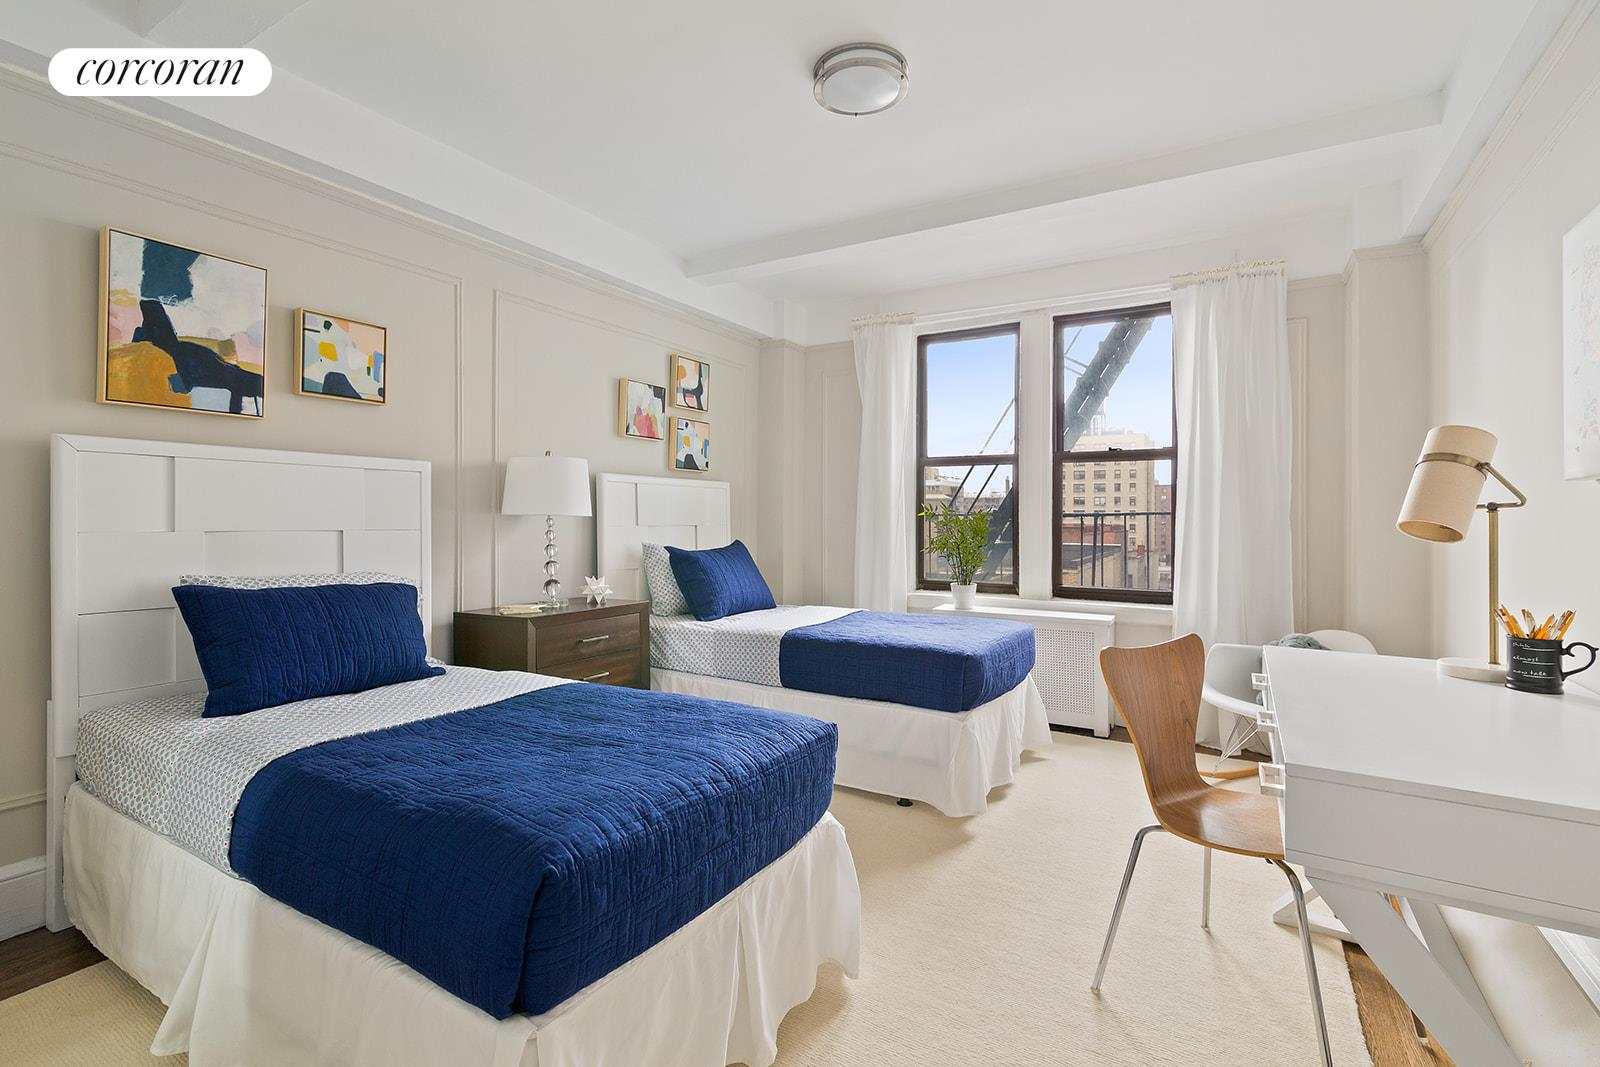 Apartment for sale at 123 West 93rd Street, Apt 8F